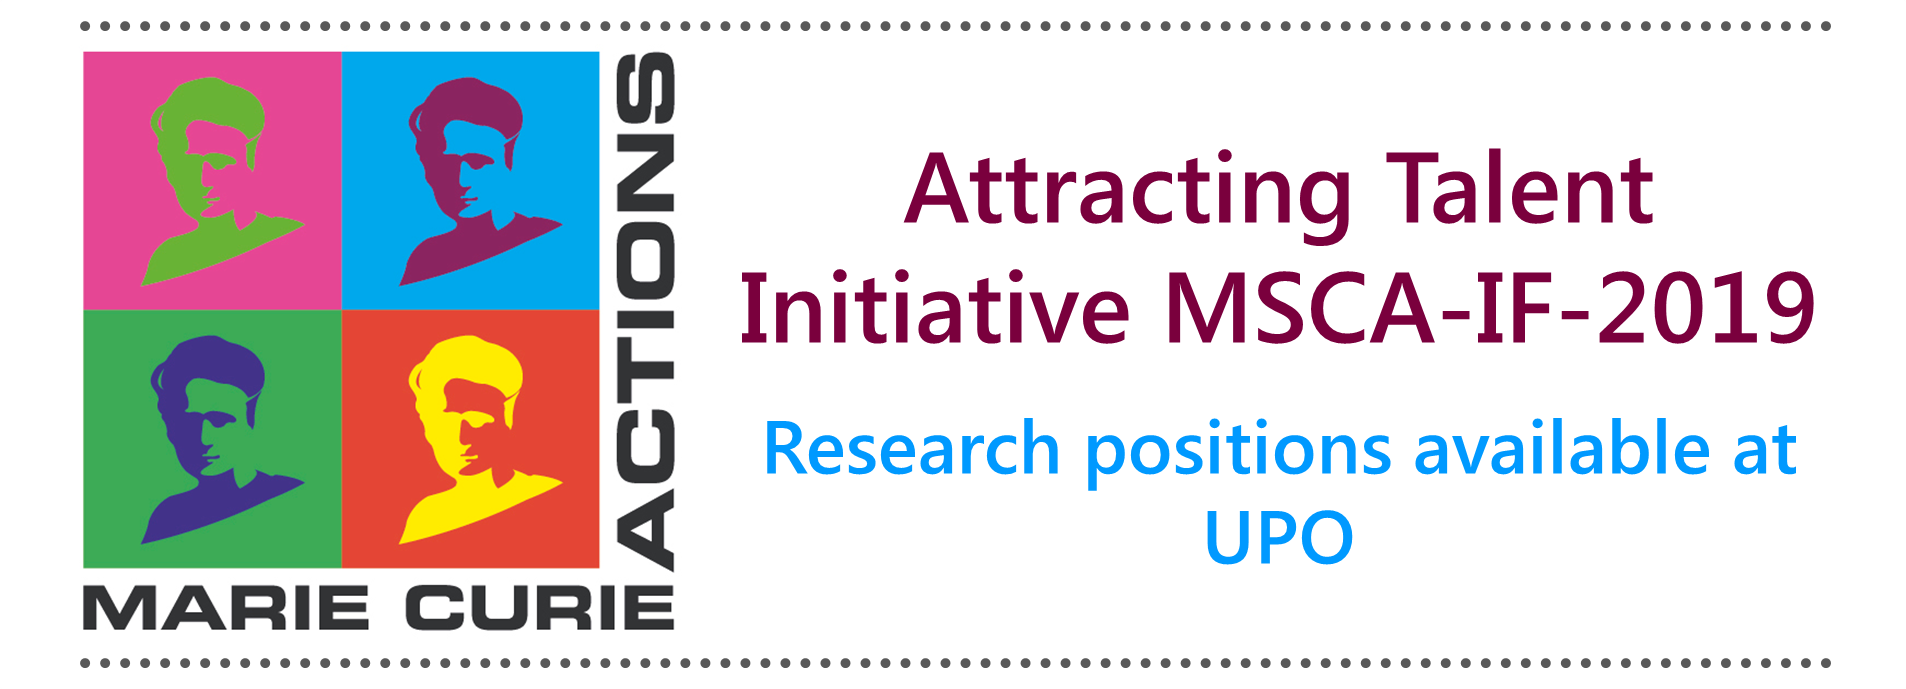 MSCA - Individual Fellowships (IF)